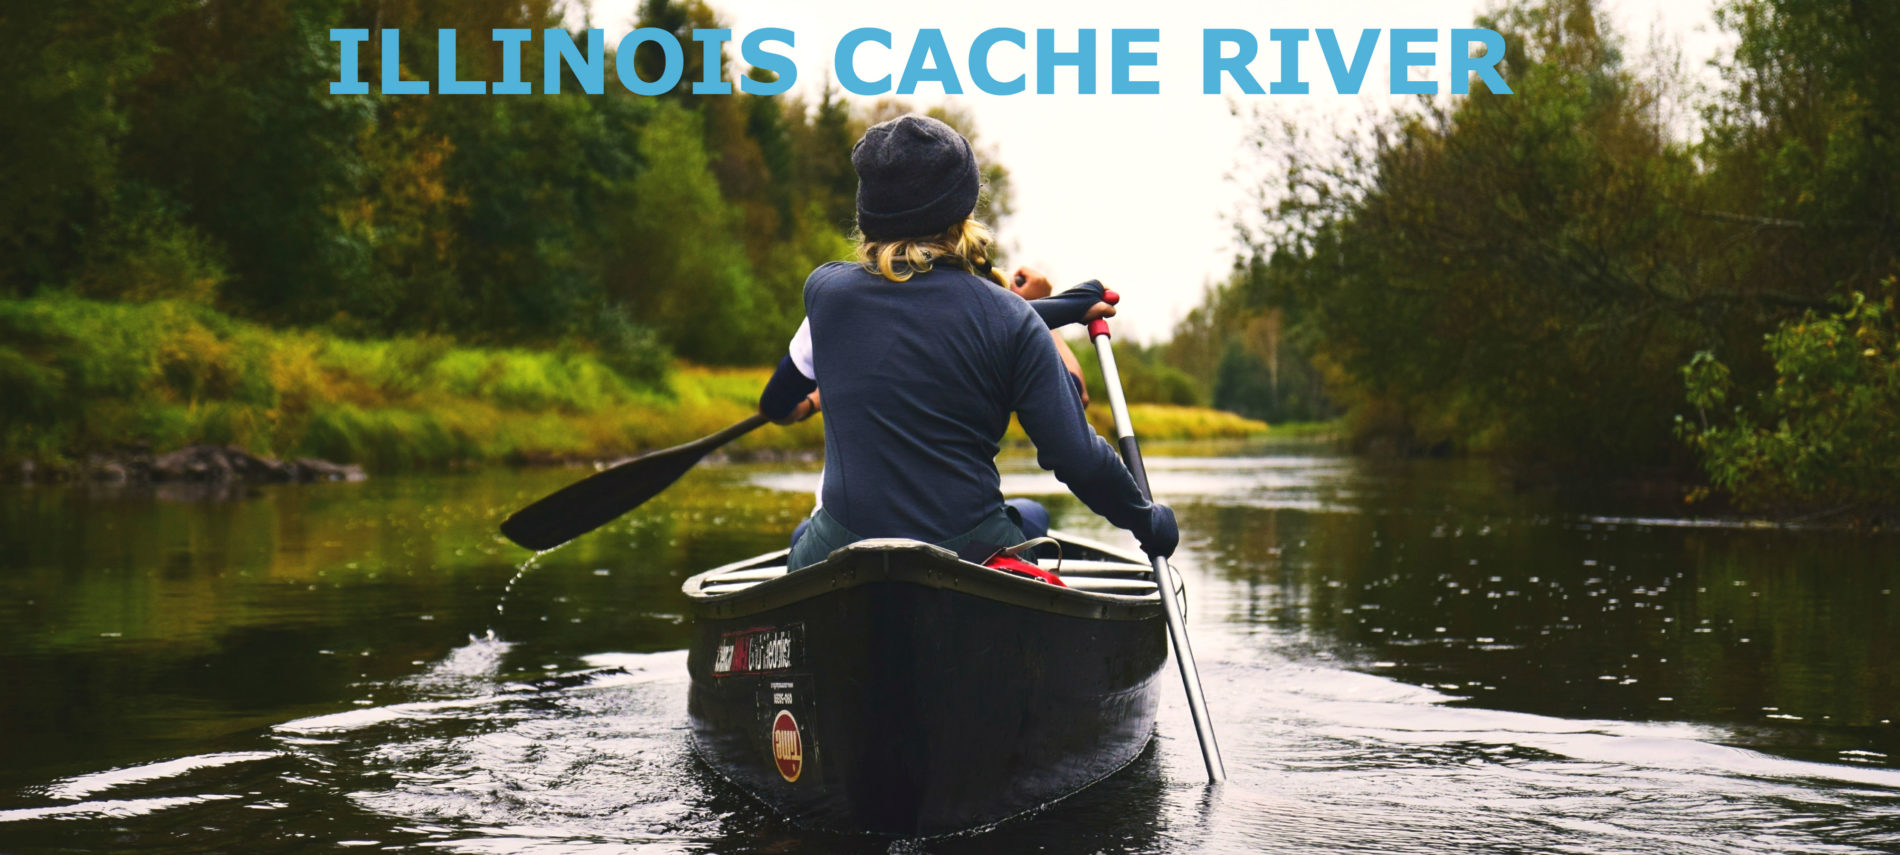 A photo of a woman canoeing down a tree-lined river.